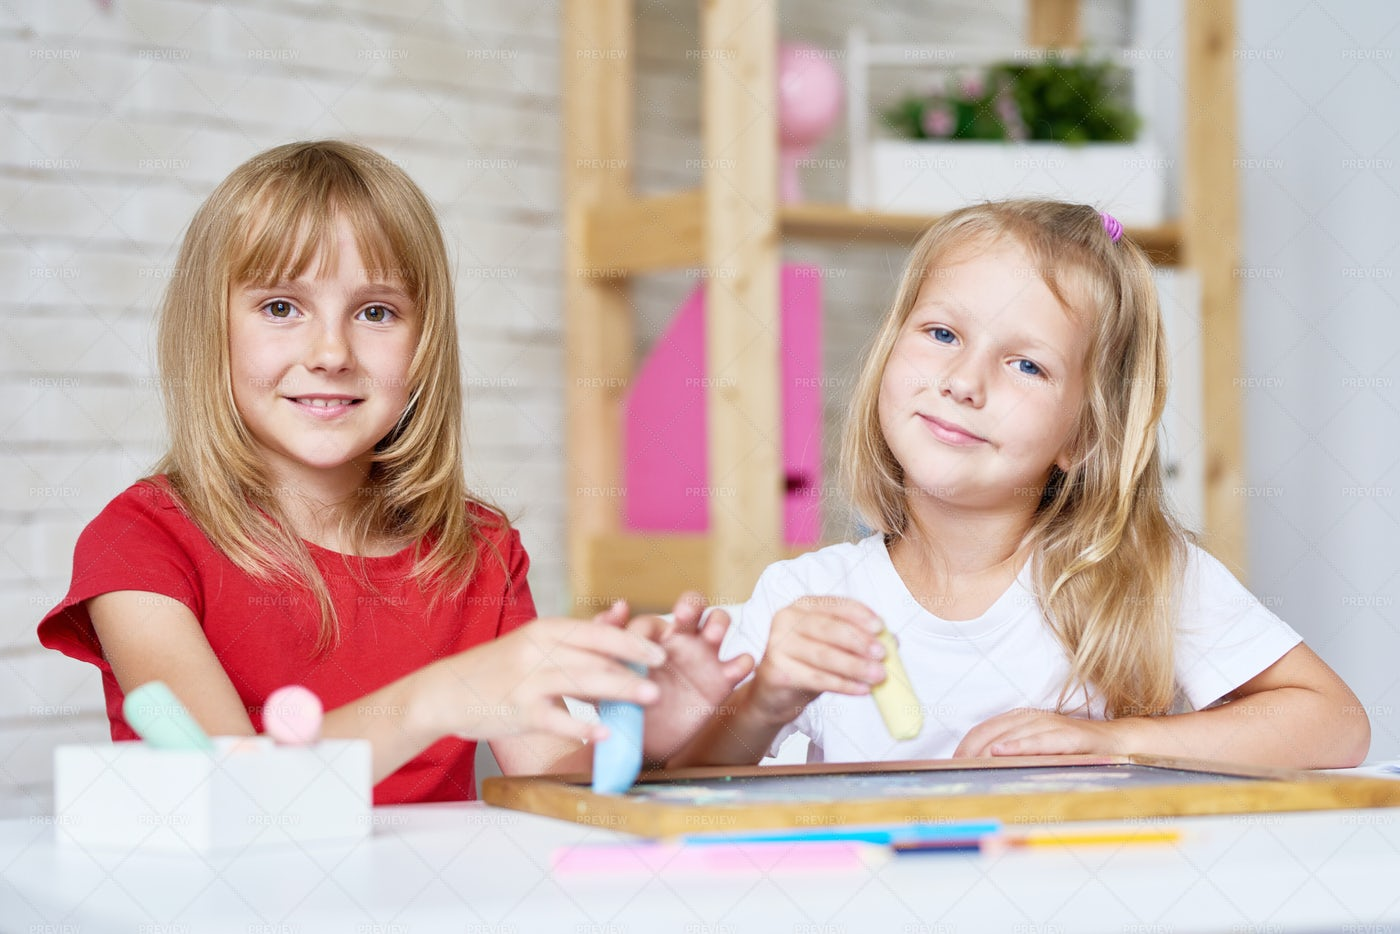 Cute Sisters Playing With...: Stock Photos